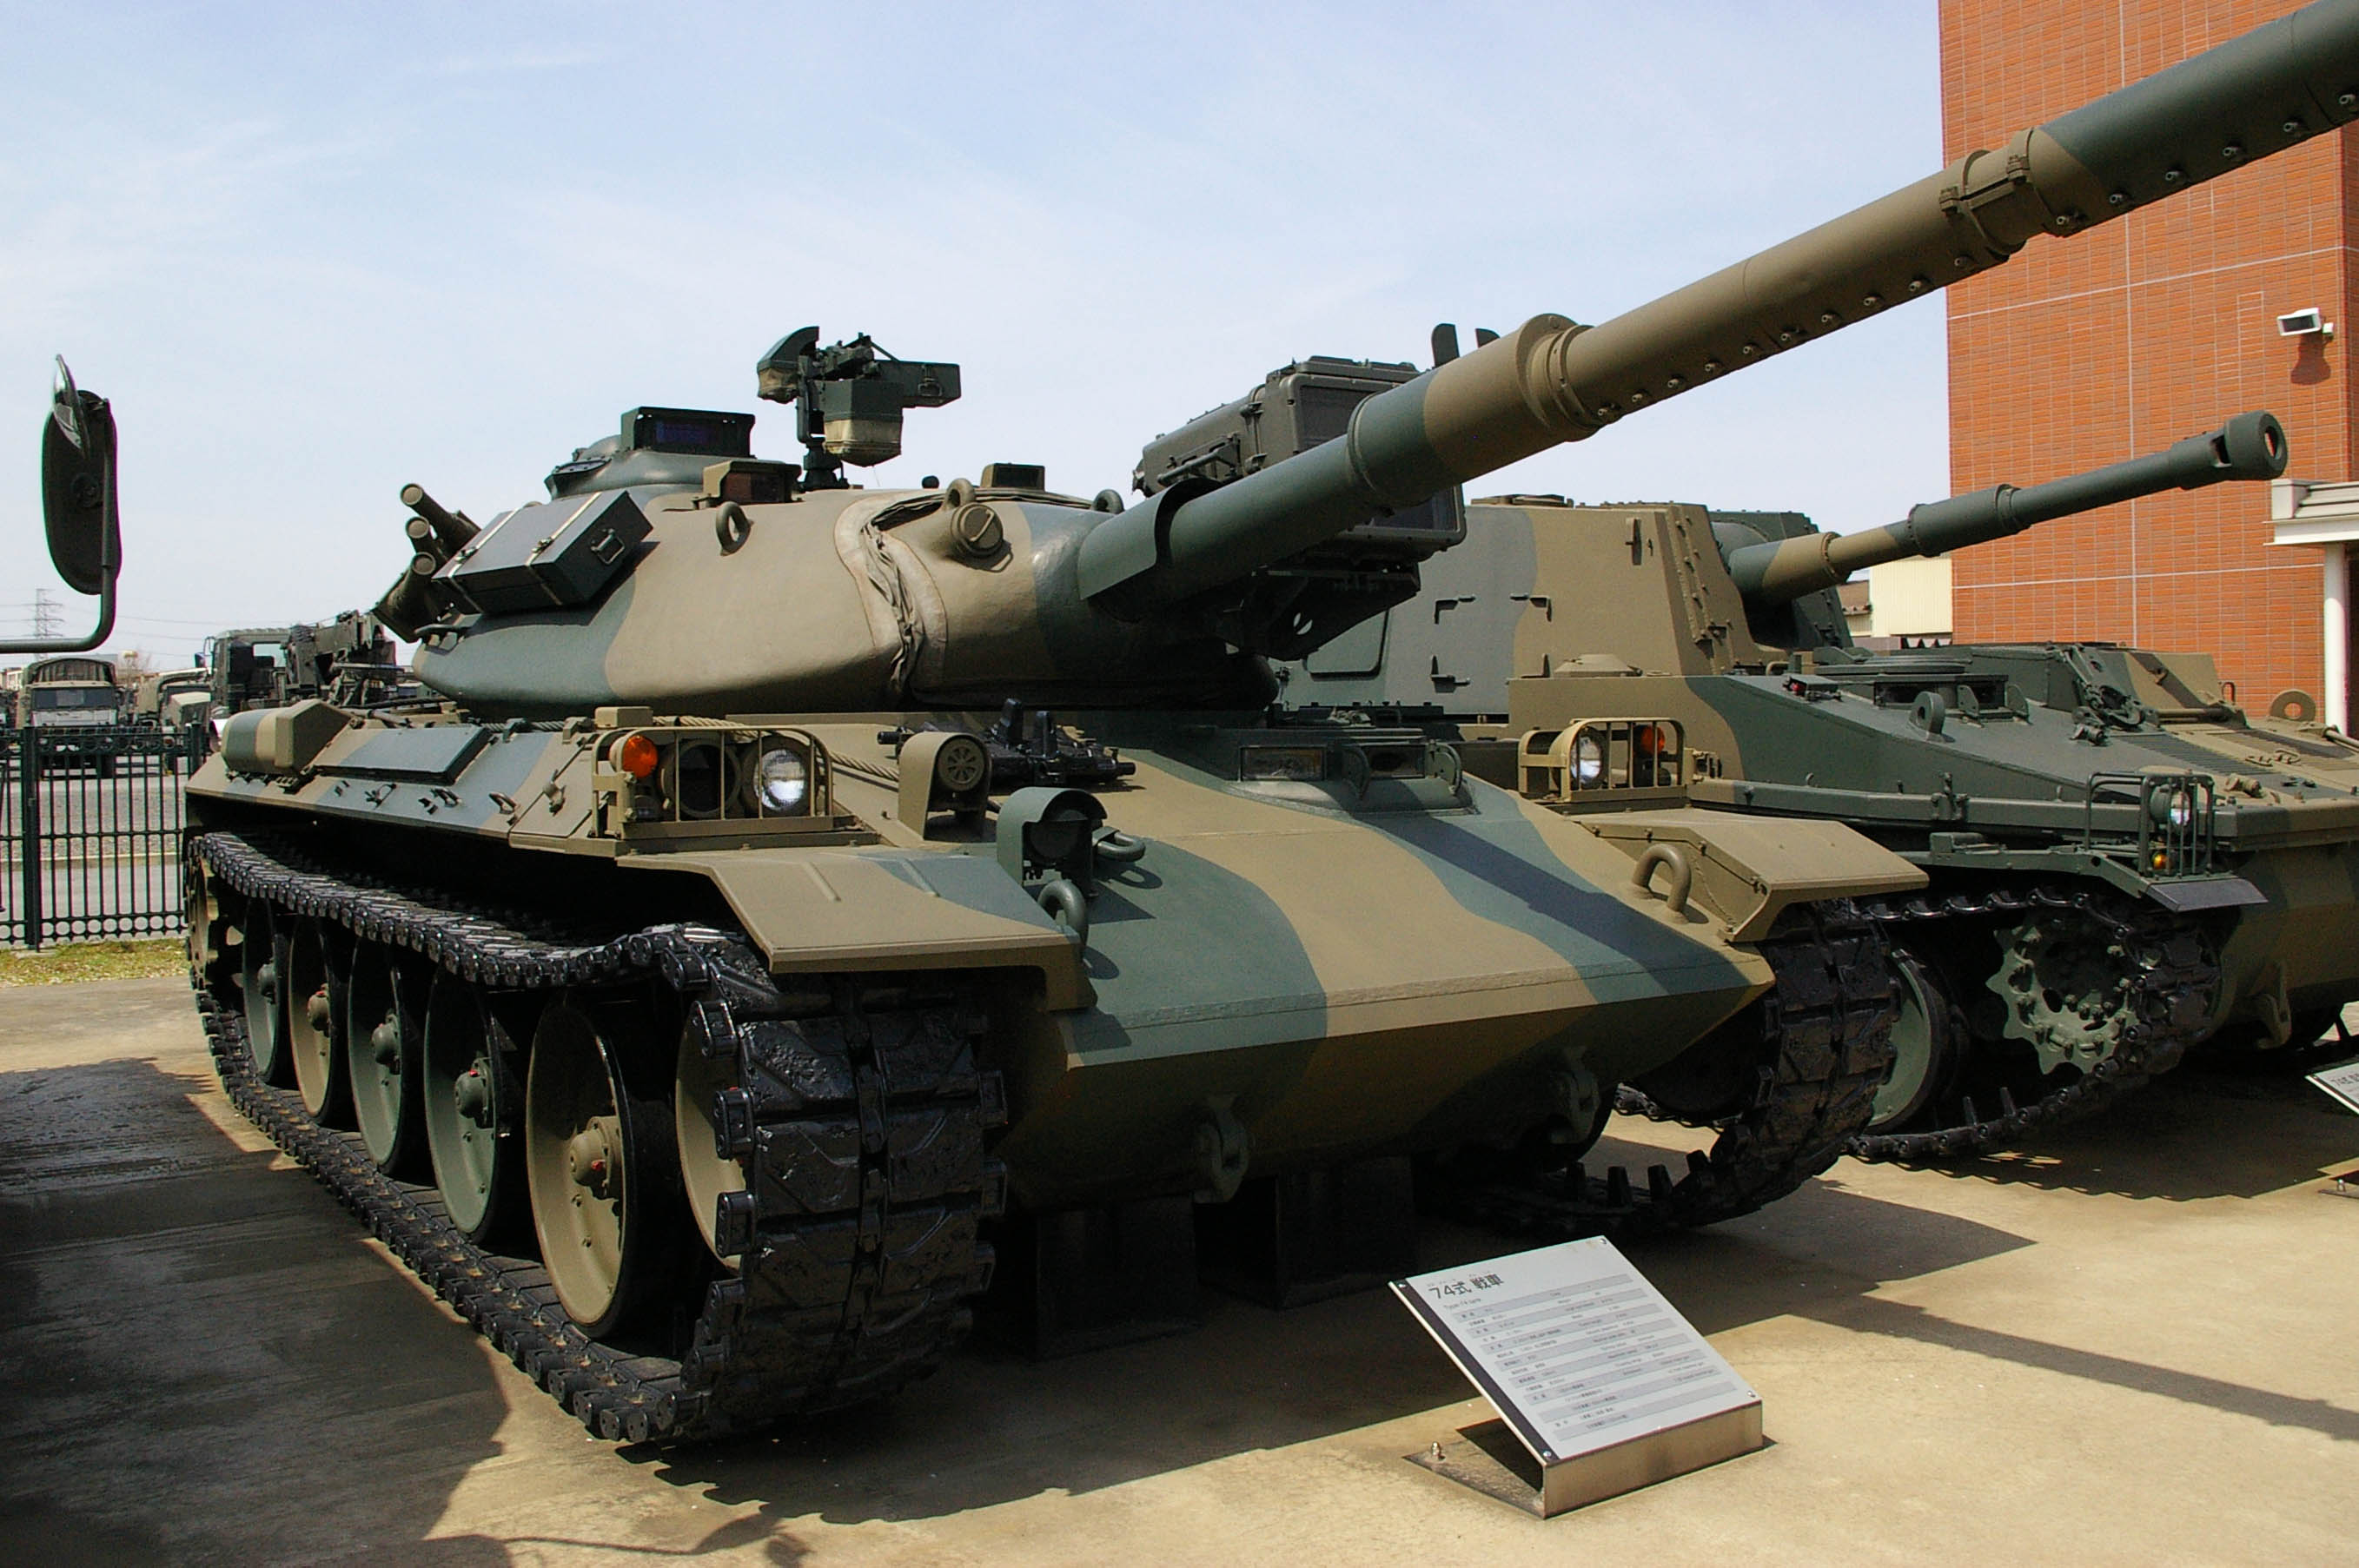 Description jgsdf type74 tank (public information center)